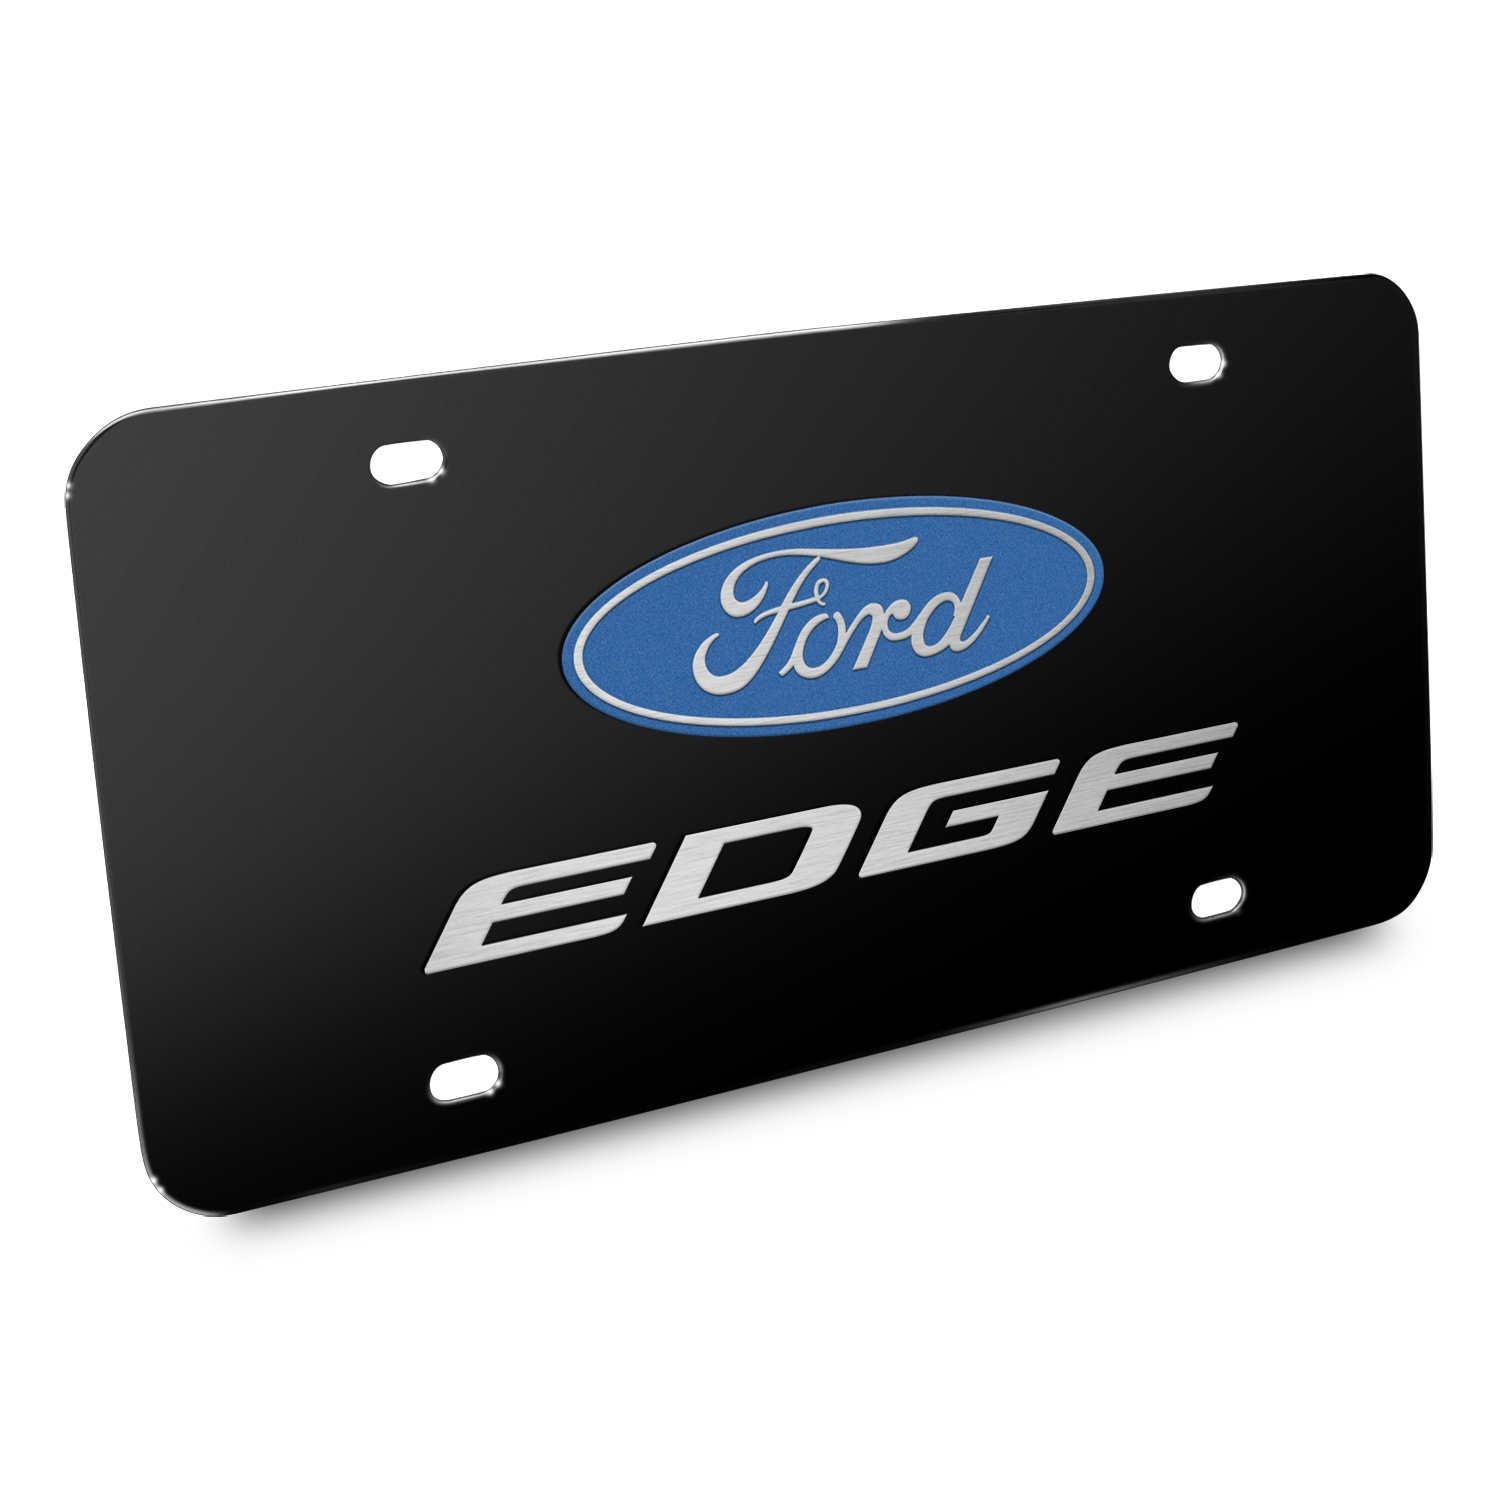 Ford Edge 3D Dual Logo Black Stainless Steel License Plate